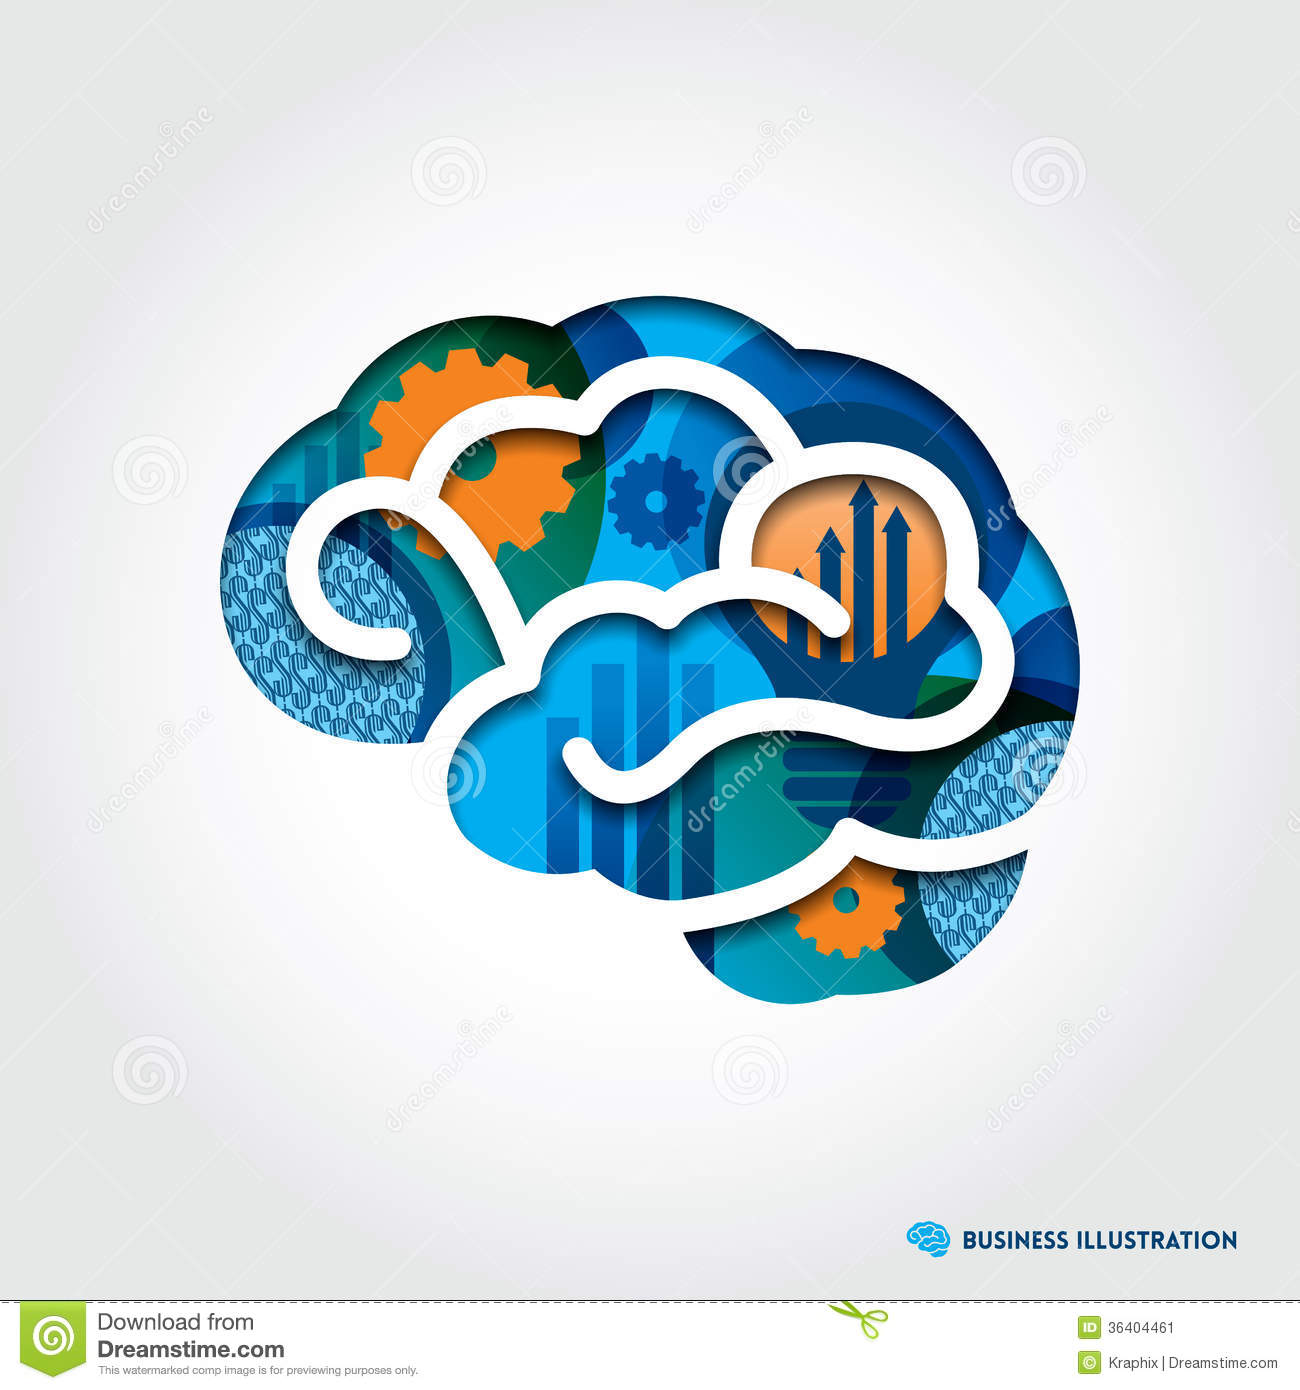 Minimal style Brain Illustration with Business Con